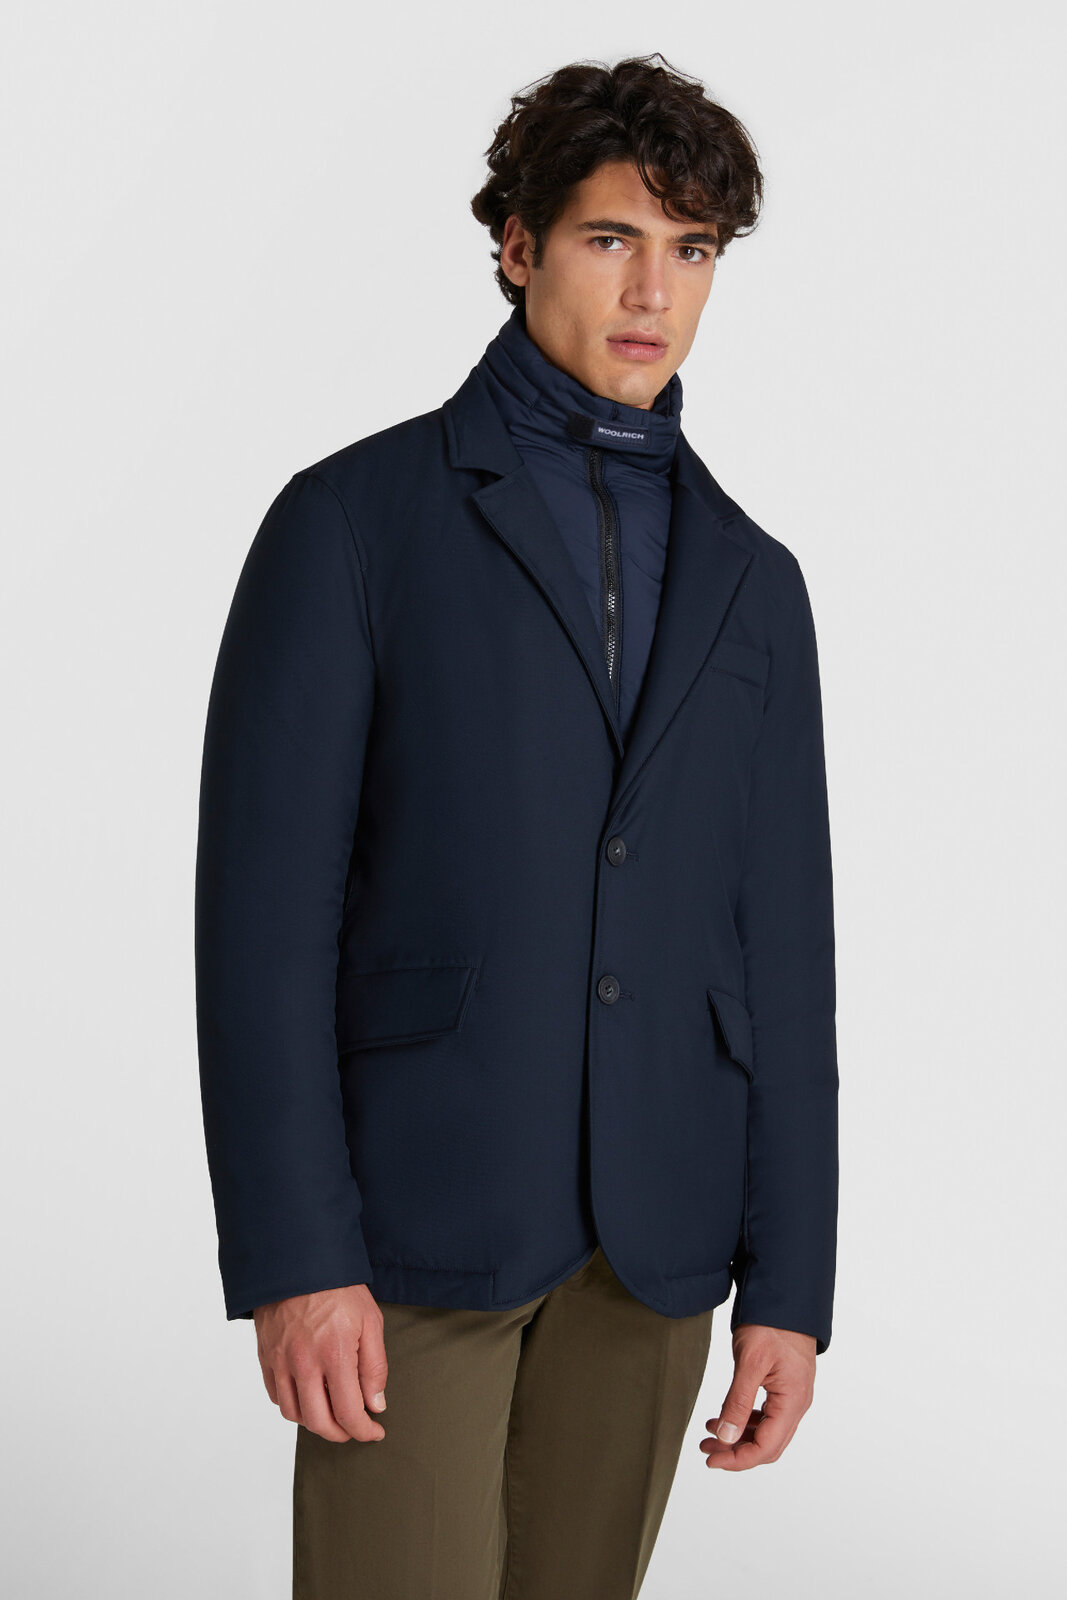 City Blazer With Removable Bib - Woolrich